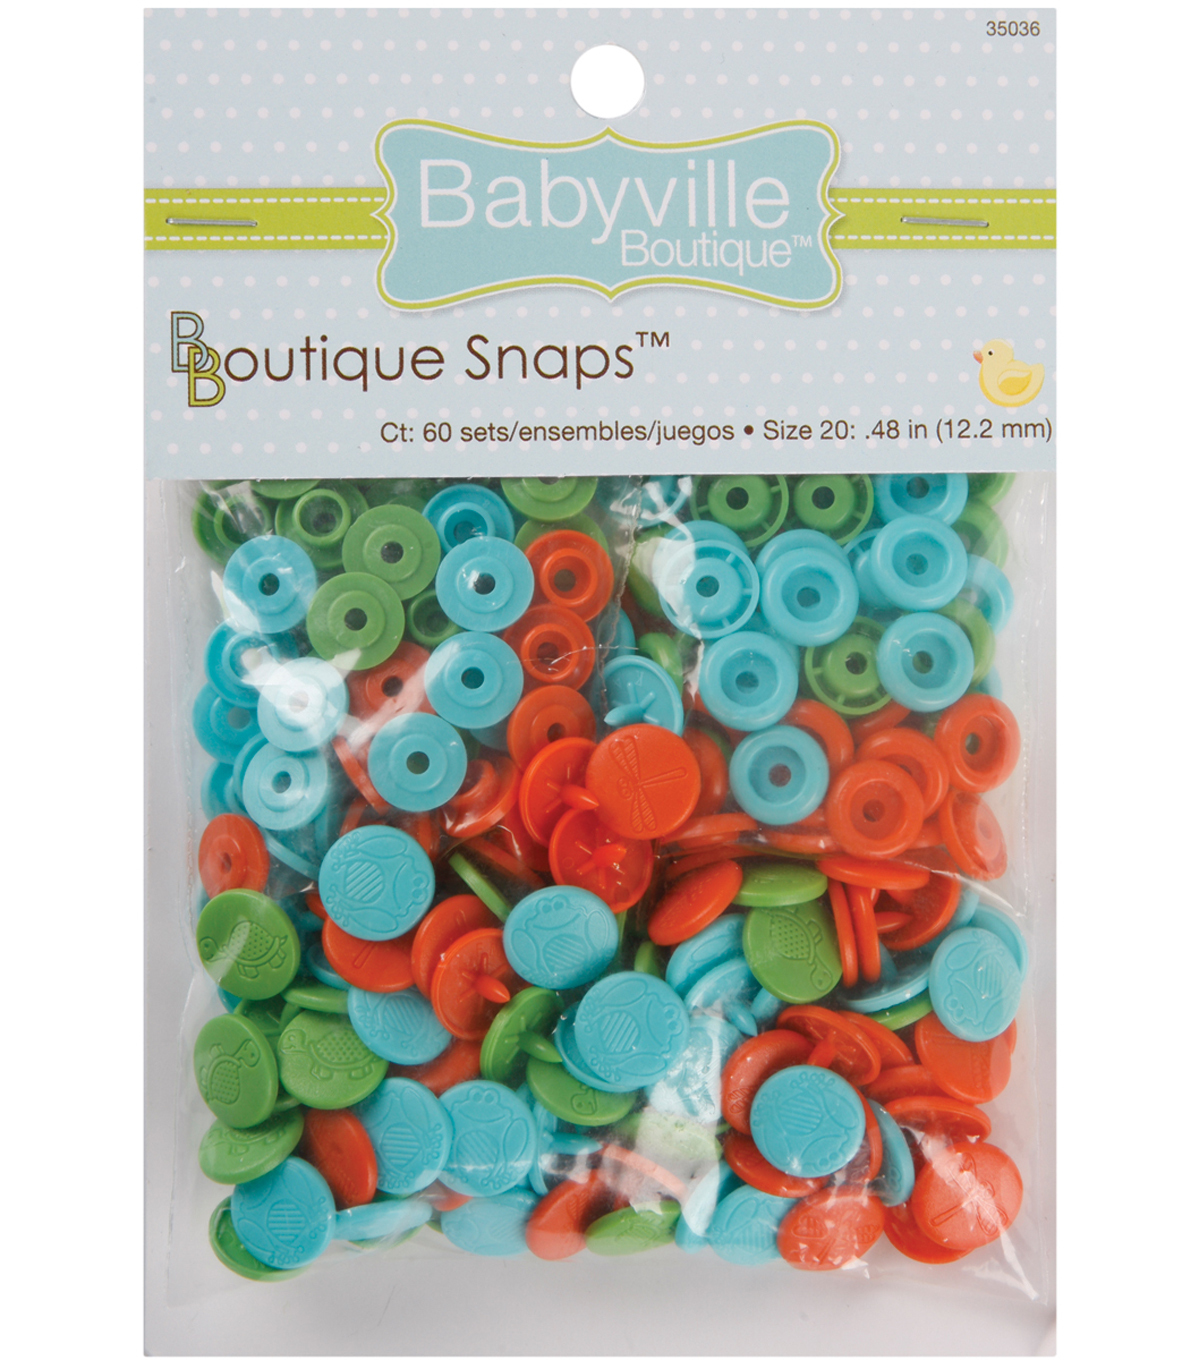 Babyville Boutique Snaps Playful Pond